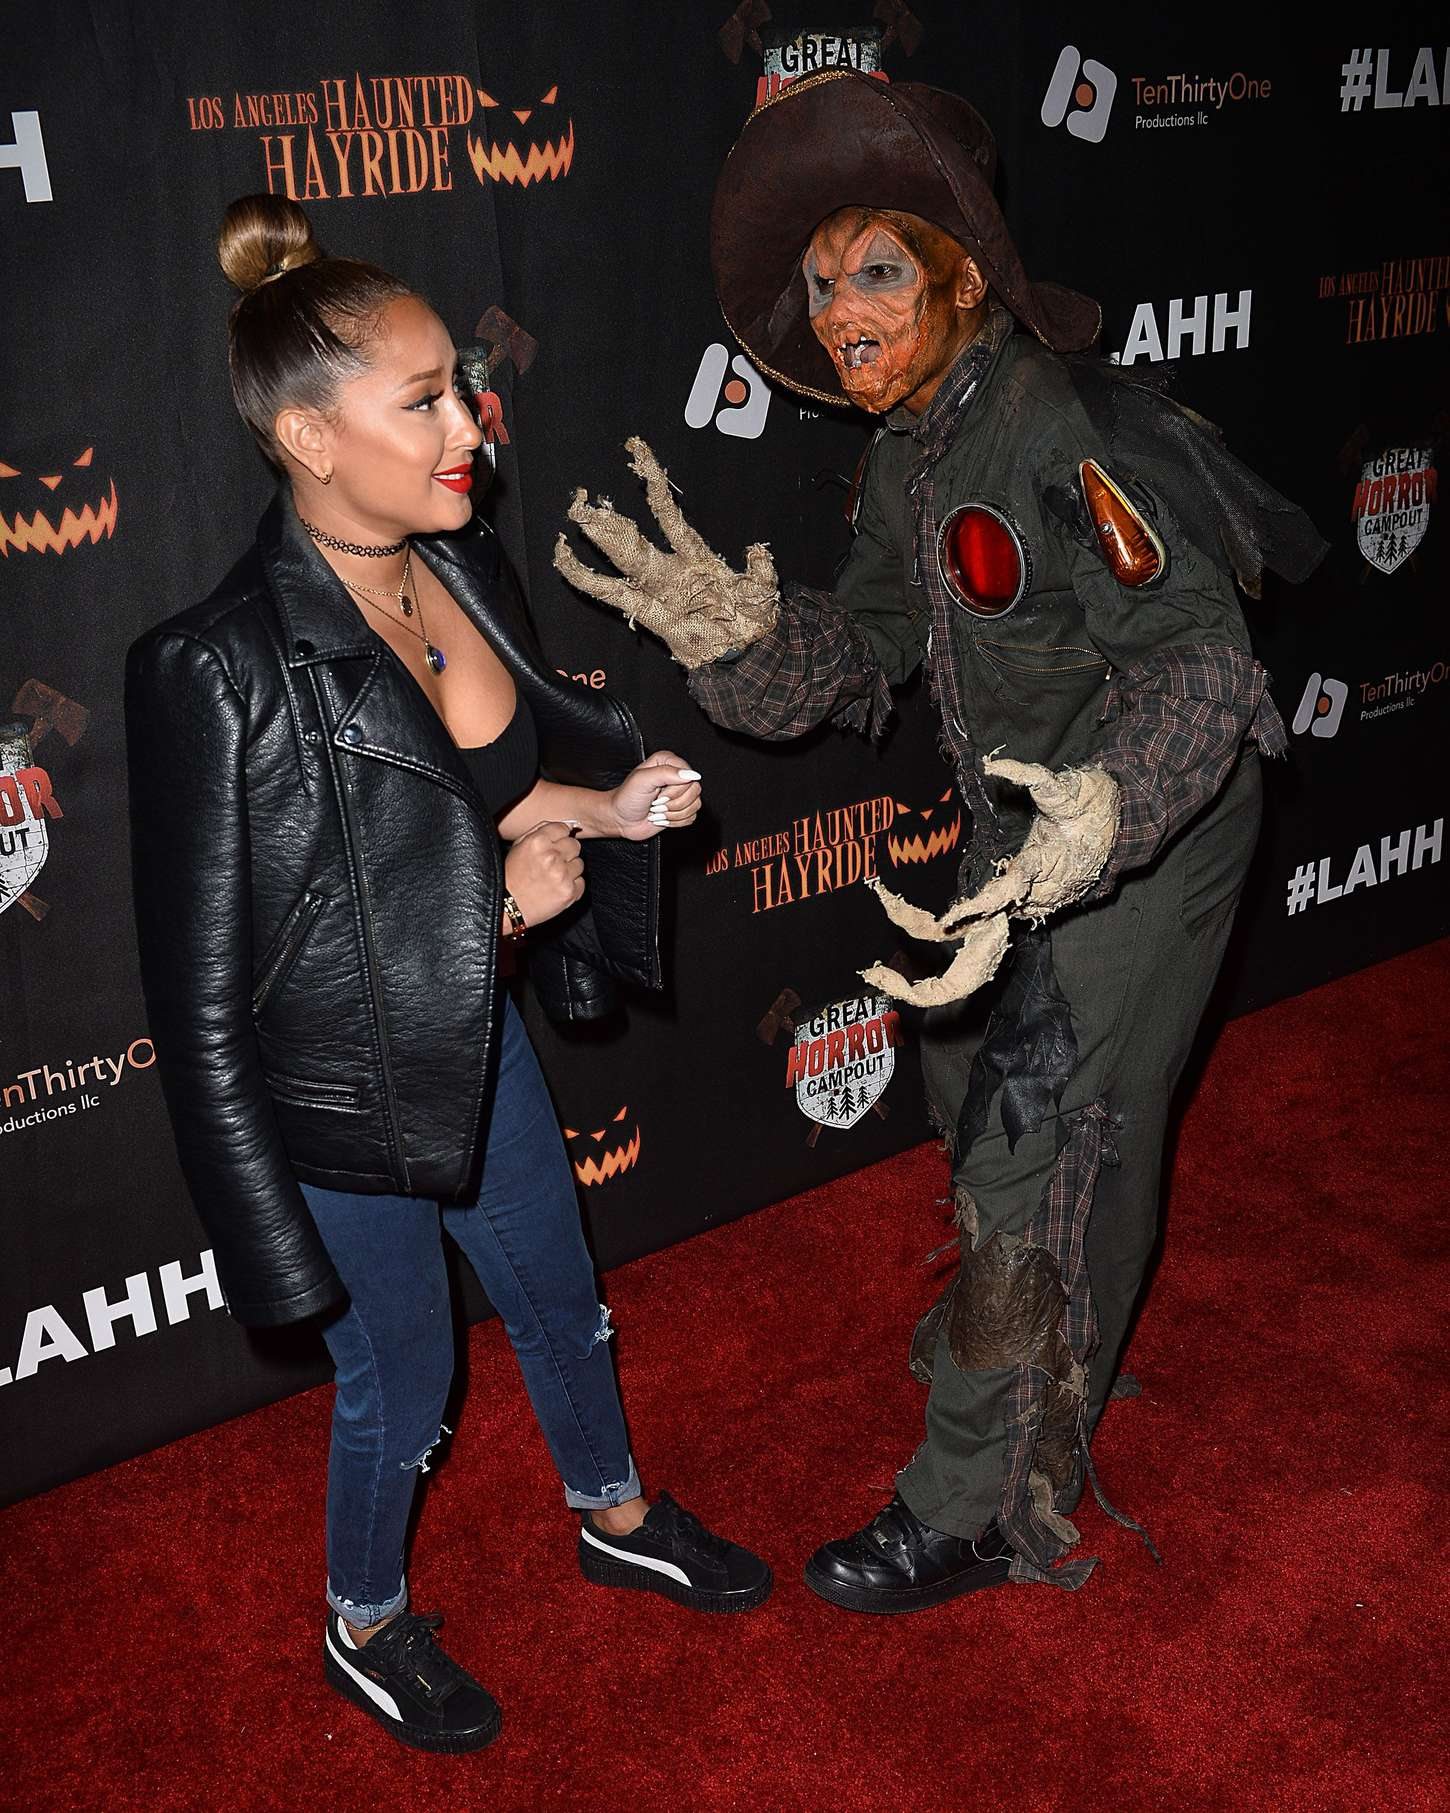 Adrienne Bailon Los Angeles Haunted Hayride Black Carpet Premiere Night